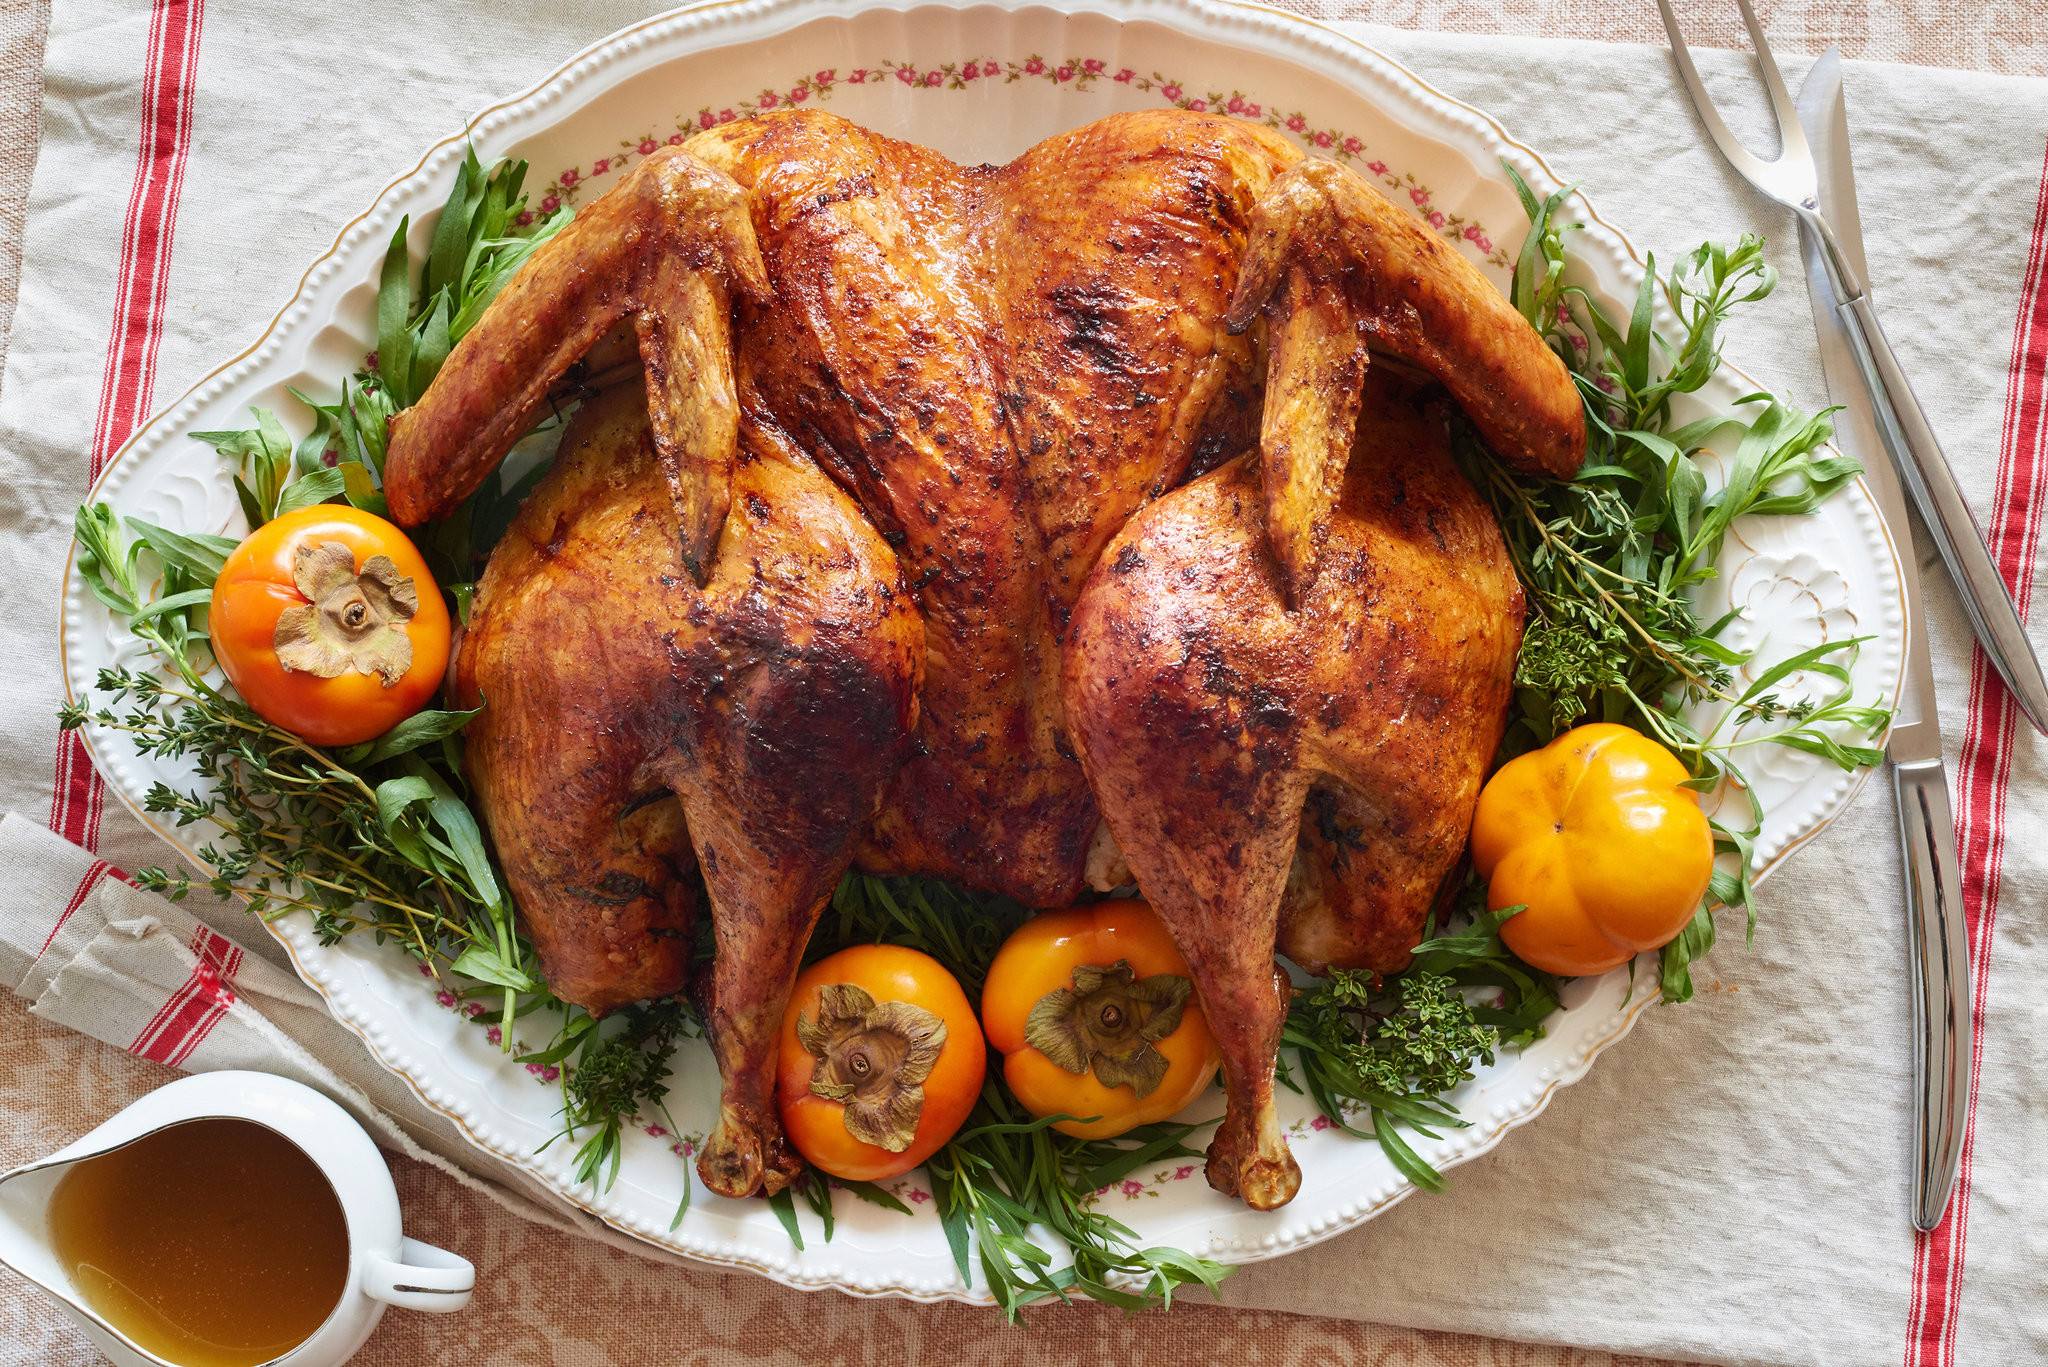 Cooked Turkey For Thanksgiving  45 Minute Roast Turkey Recipe NYT Cooking